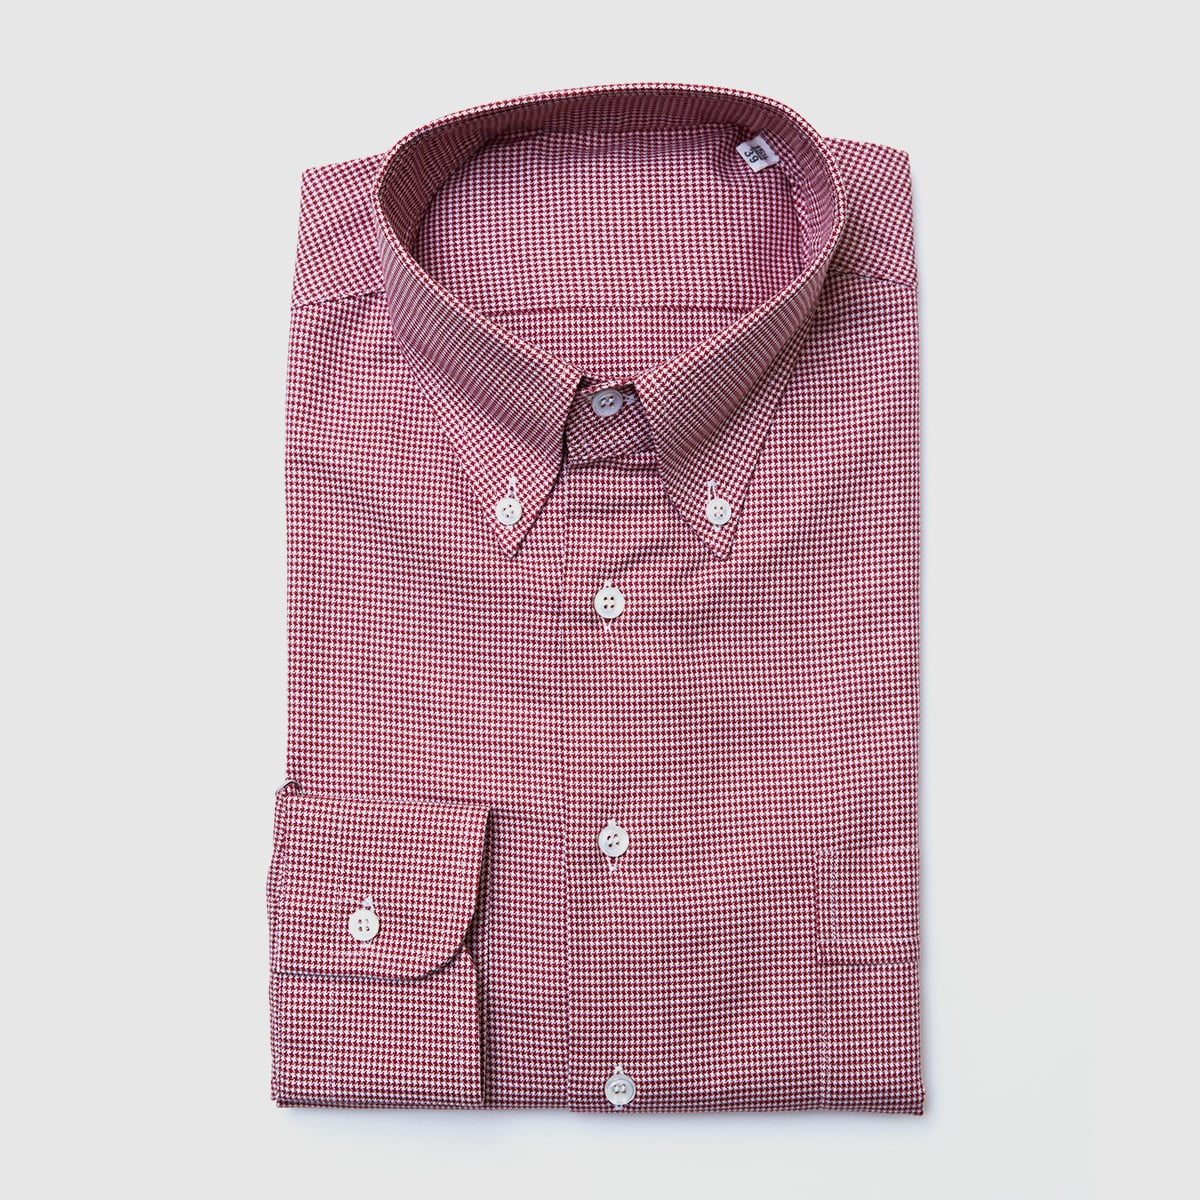 Oxford Pied de poule shirt